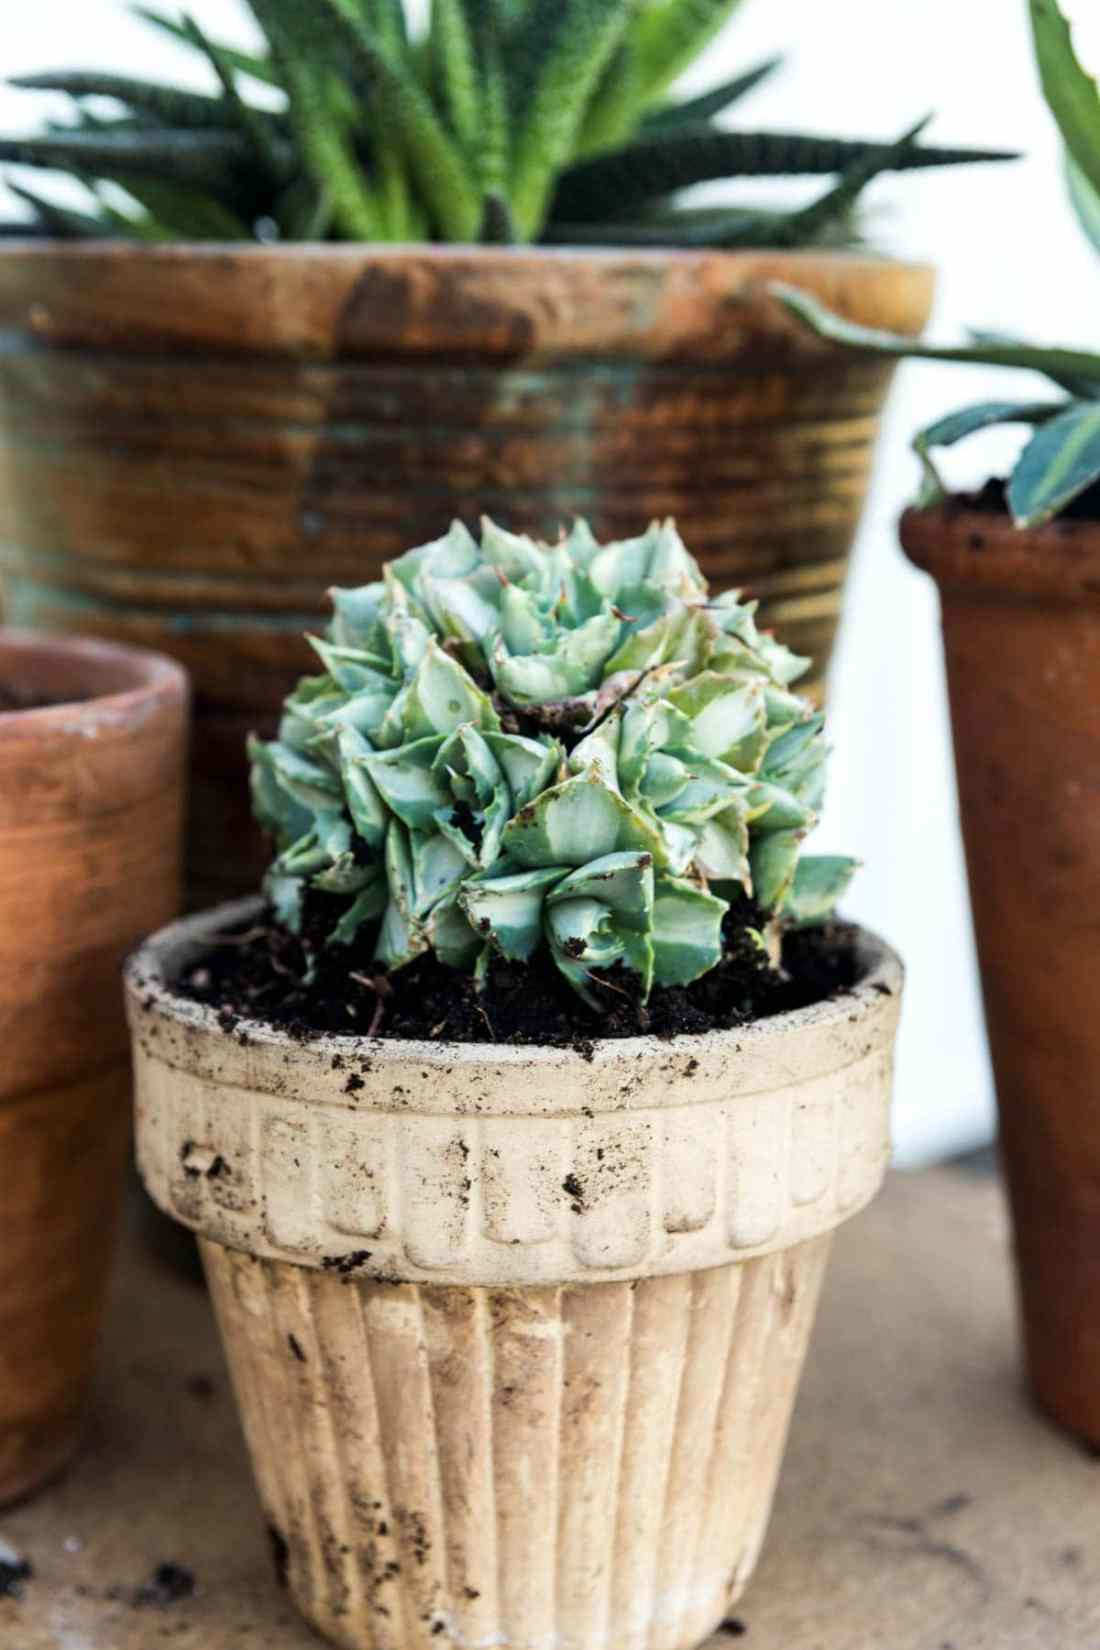 How to Split and Maintain Potted Plants | Wyse Guide